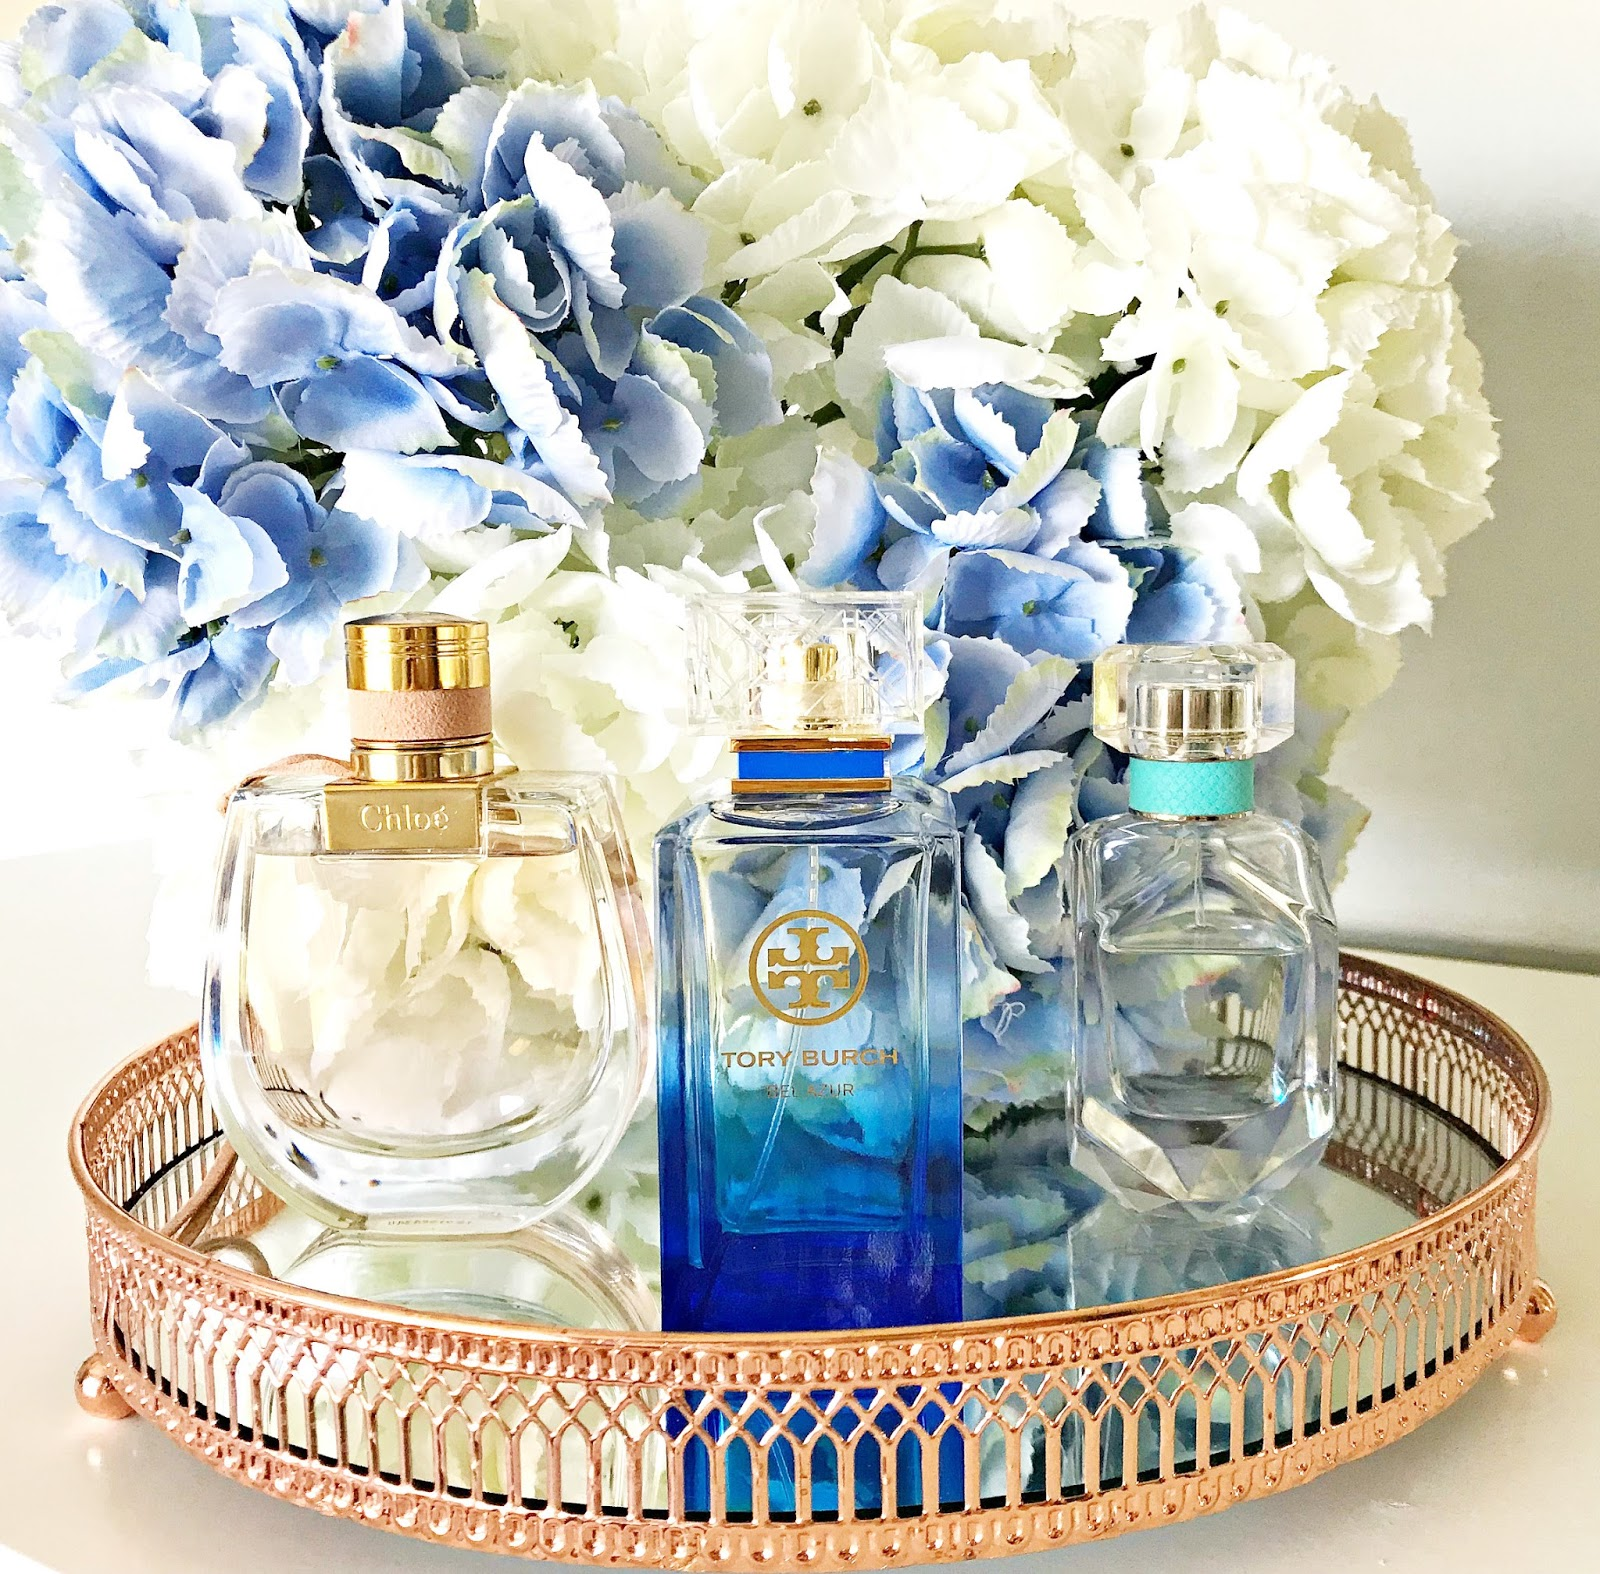 Chloe Nomade Review, Tiffany and Co Review, Tony Burch Bel Azur Review